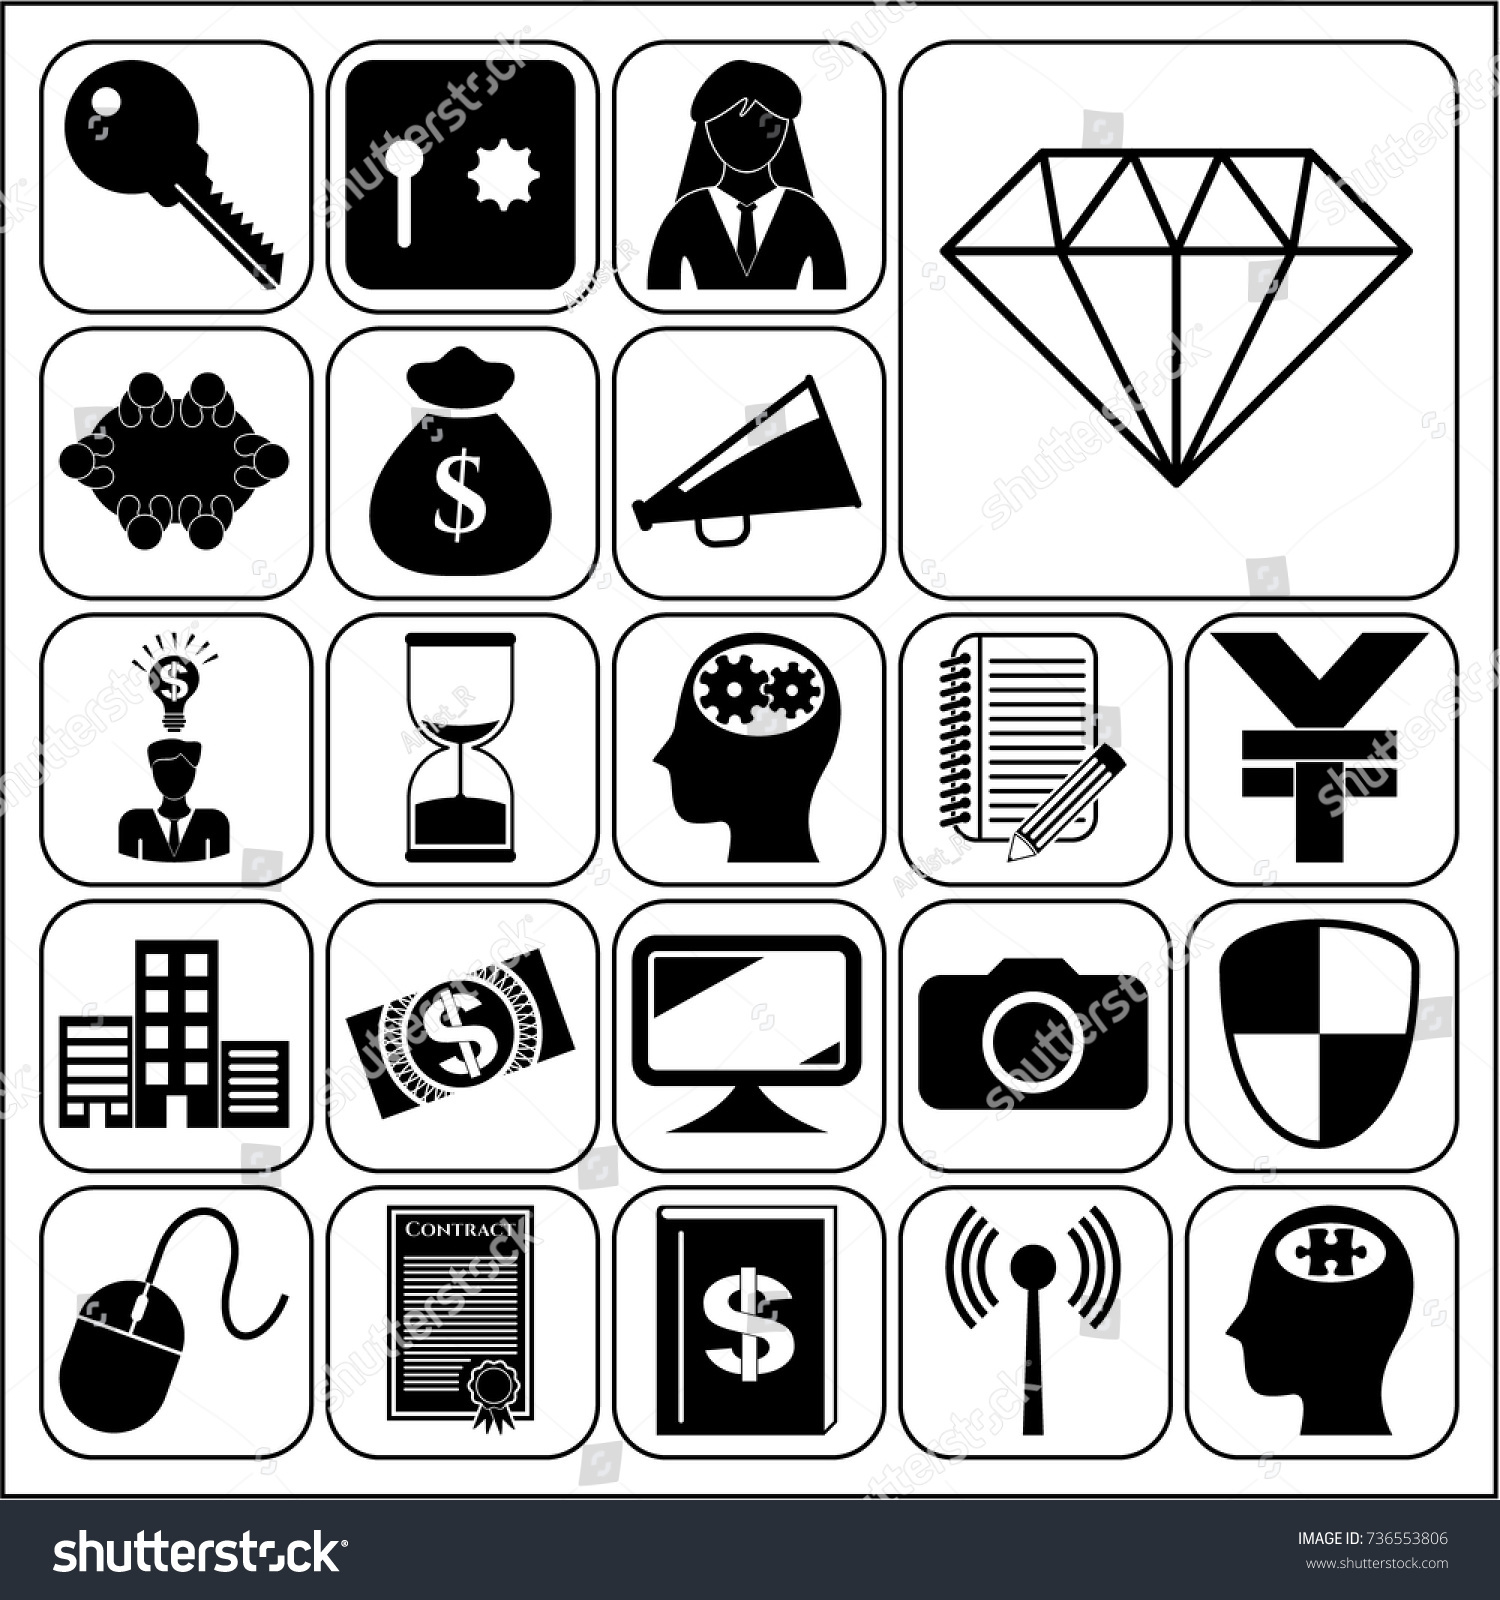 Set 22 Business Symbols Icons Collection Stock Vector Royalty Free